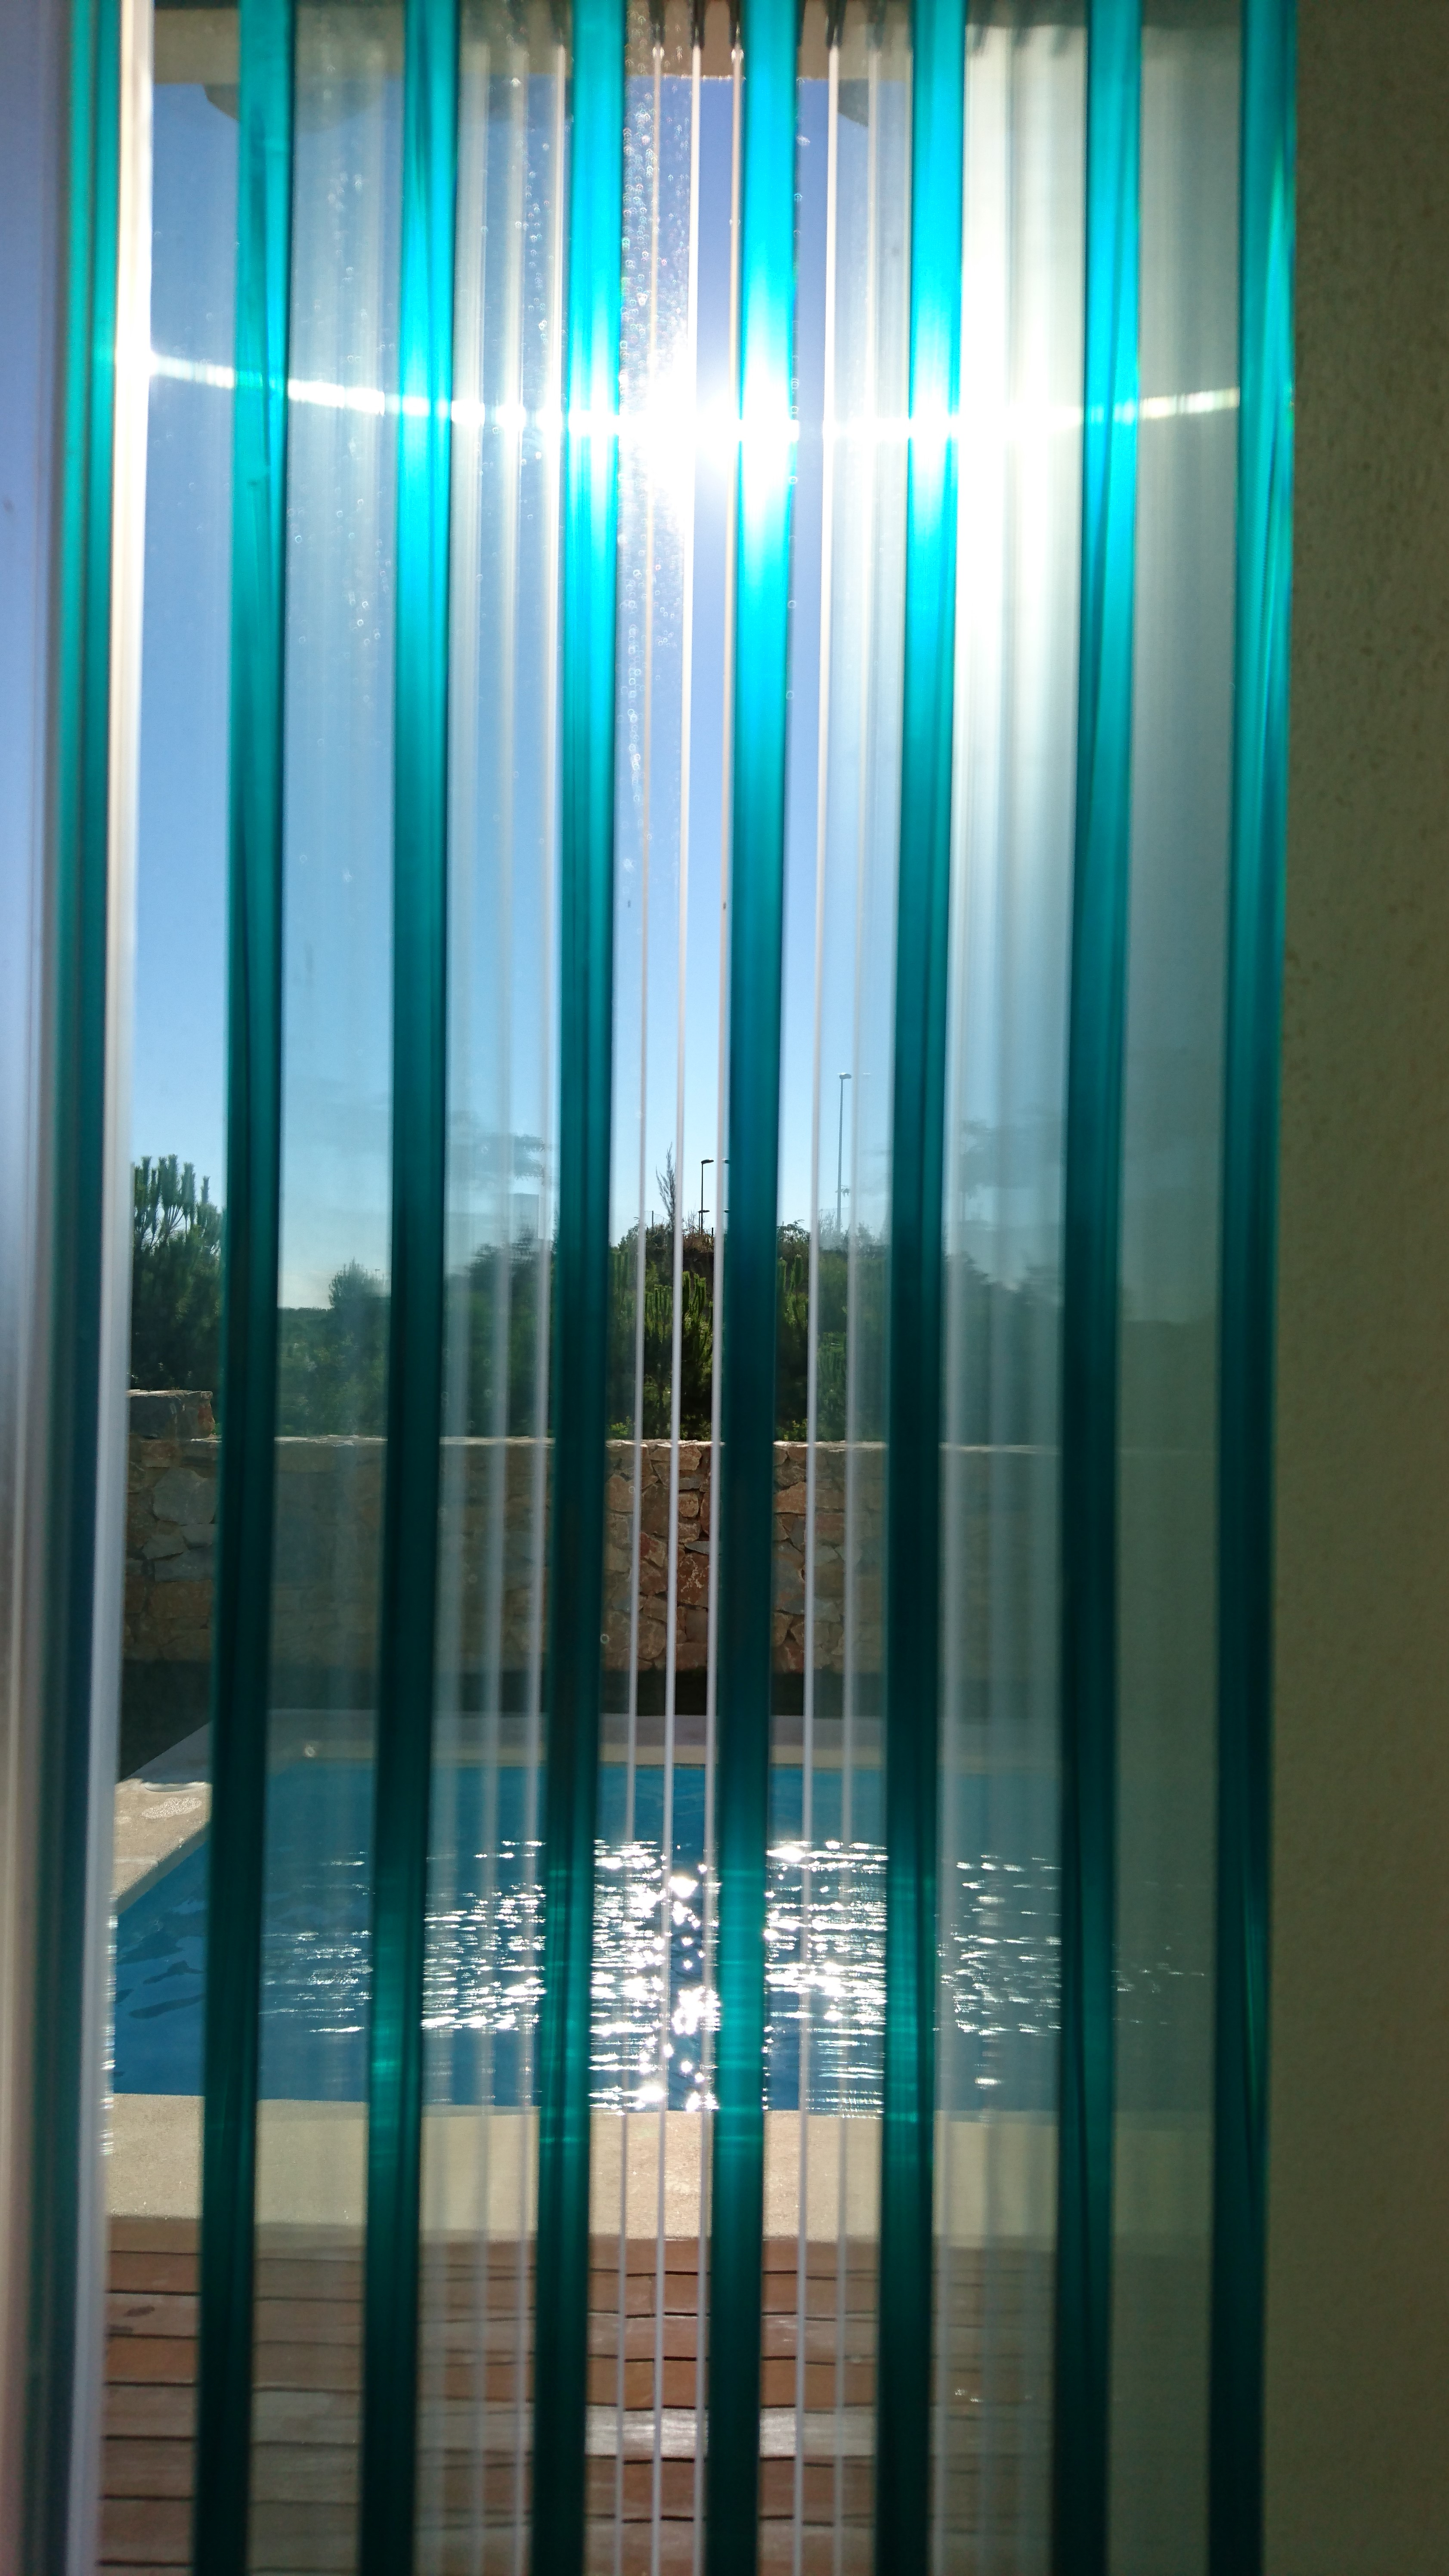 About Glass Curtains Costa Blanca Murcia Spain